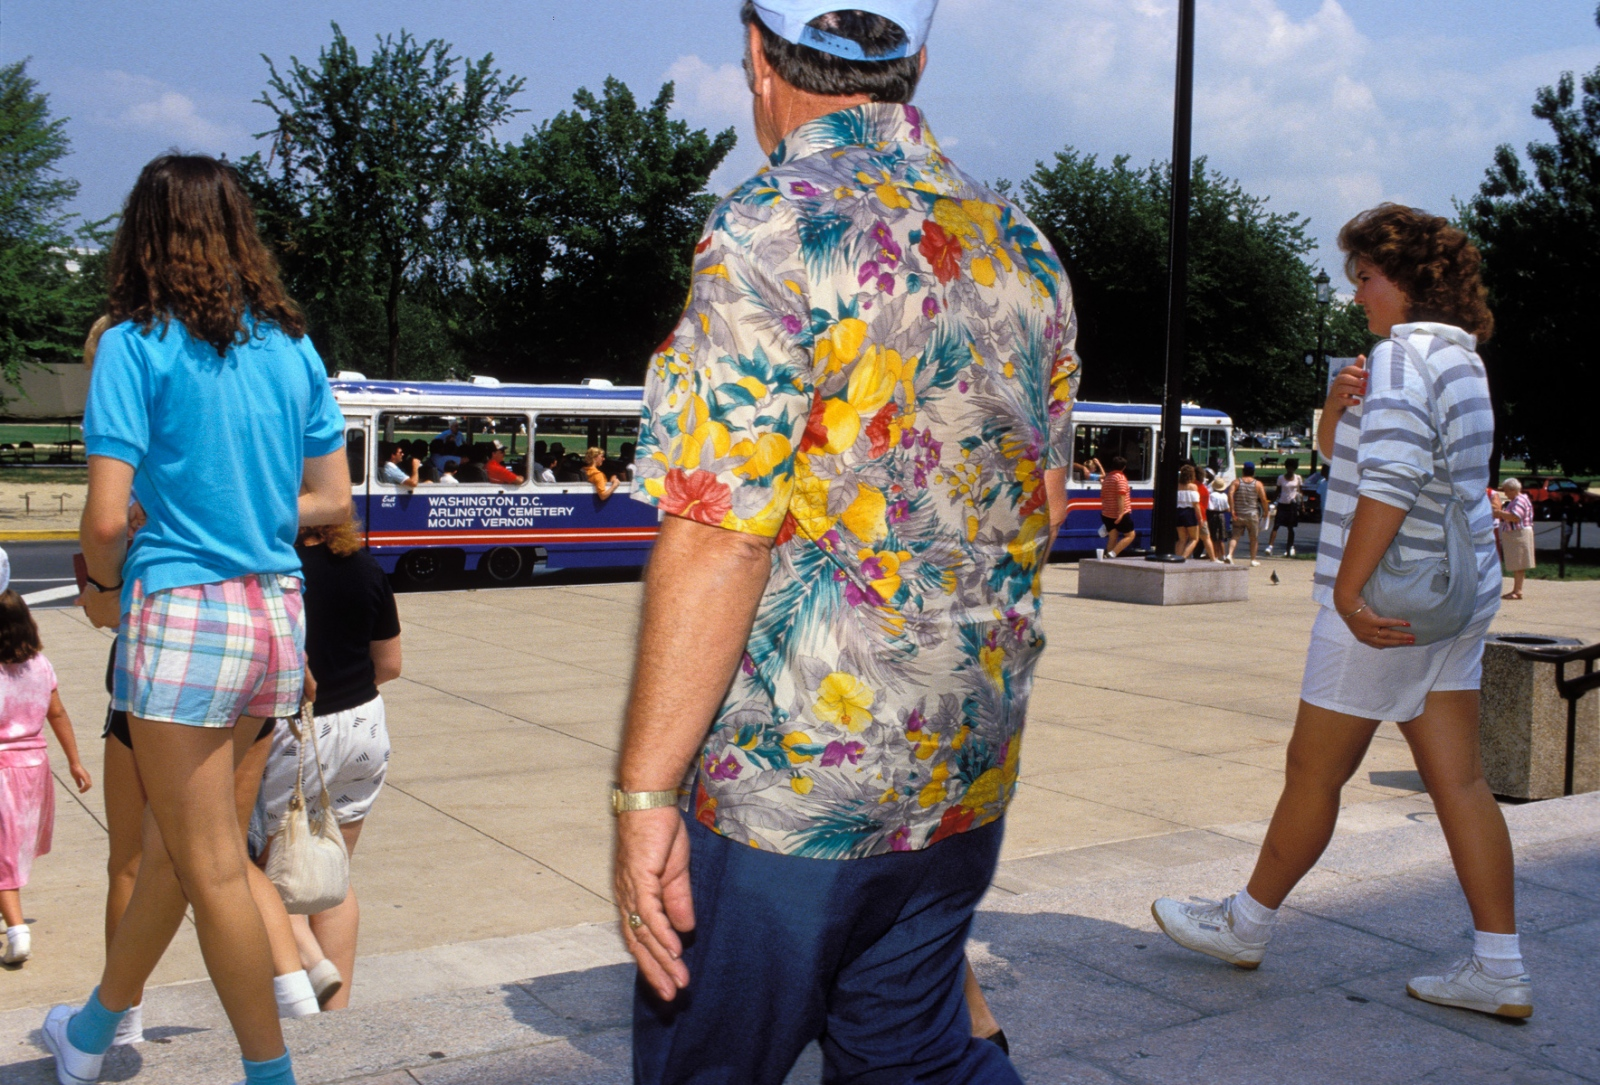 Tourists have their own fashion look and style.